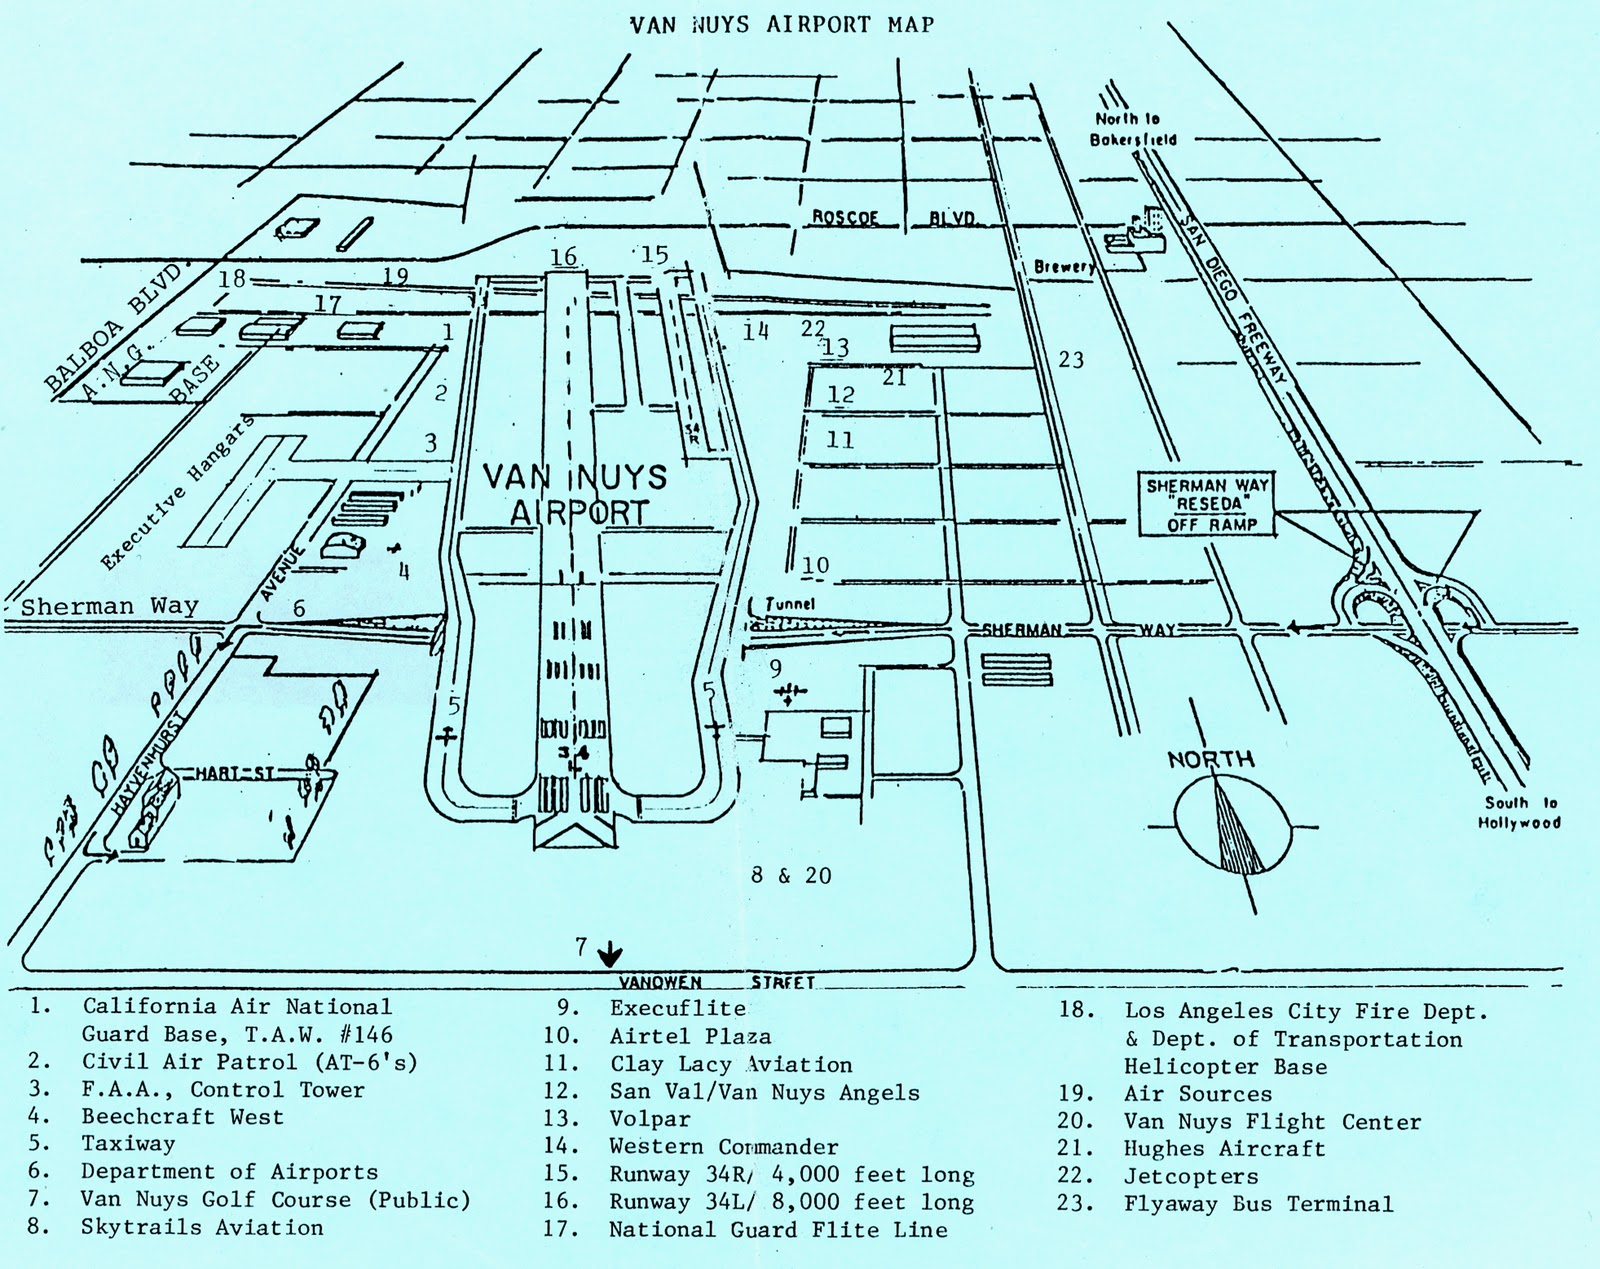 Vny airport diagram the best airport of 2018 van nuys airport vny on twitter pic advisory 16r pooptronica Image collections